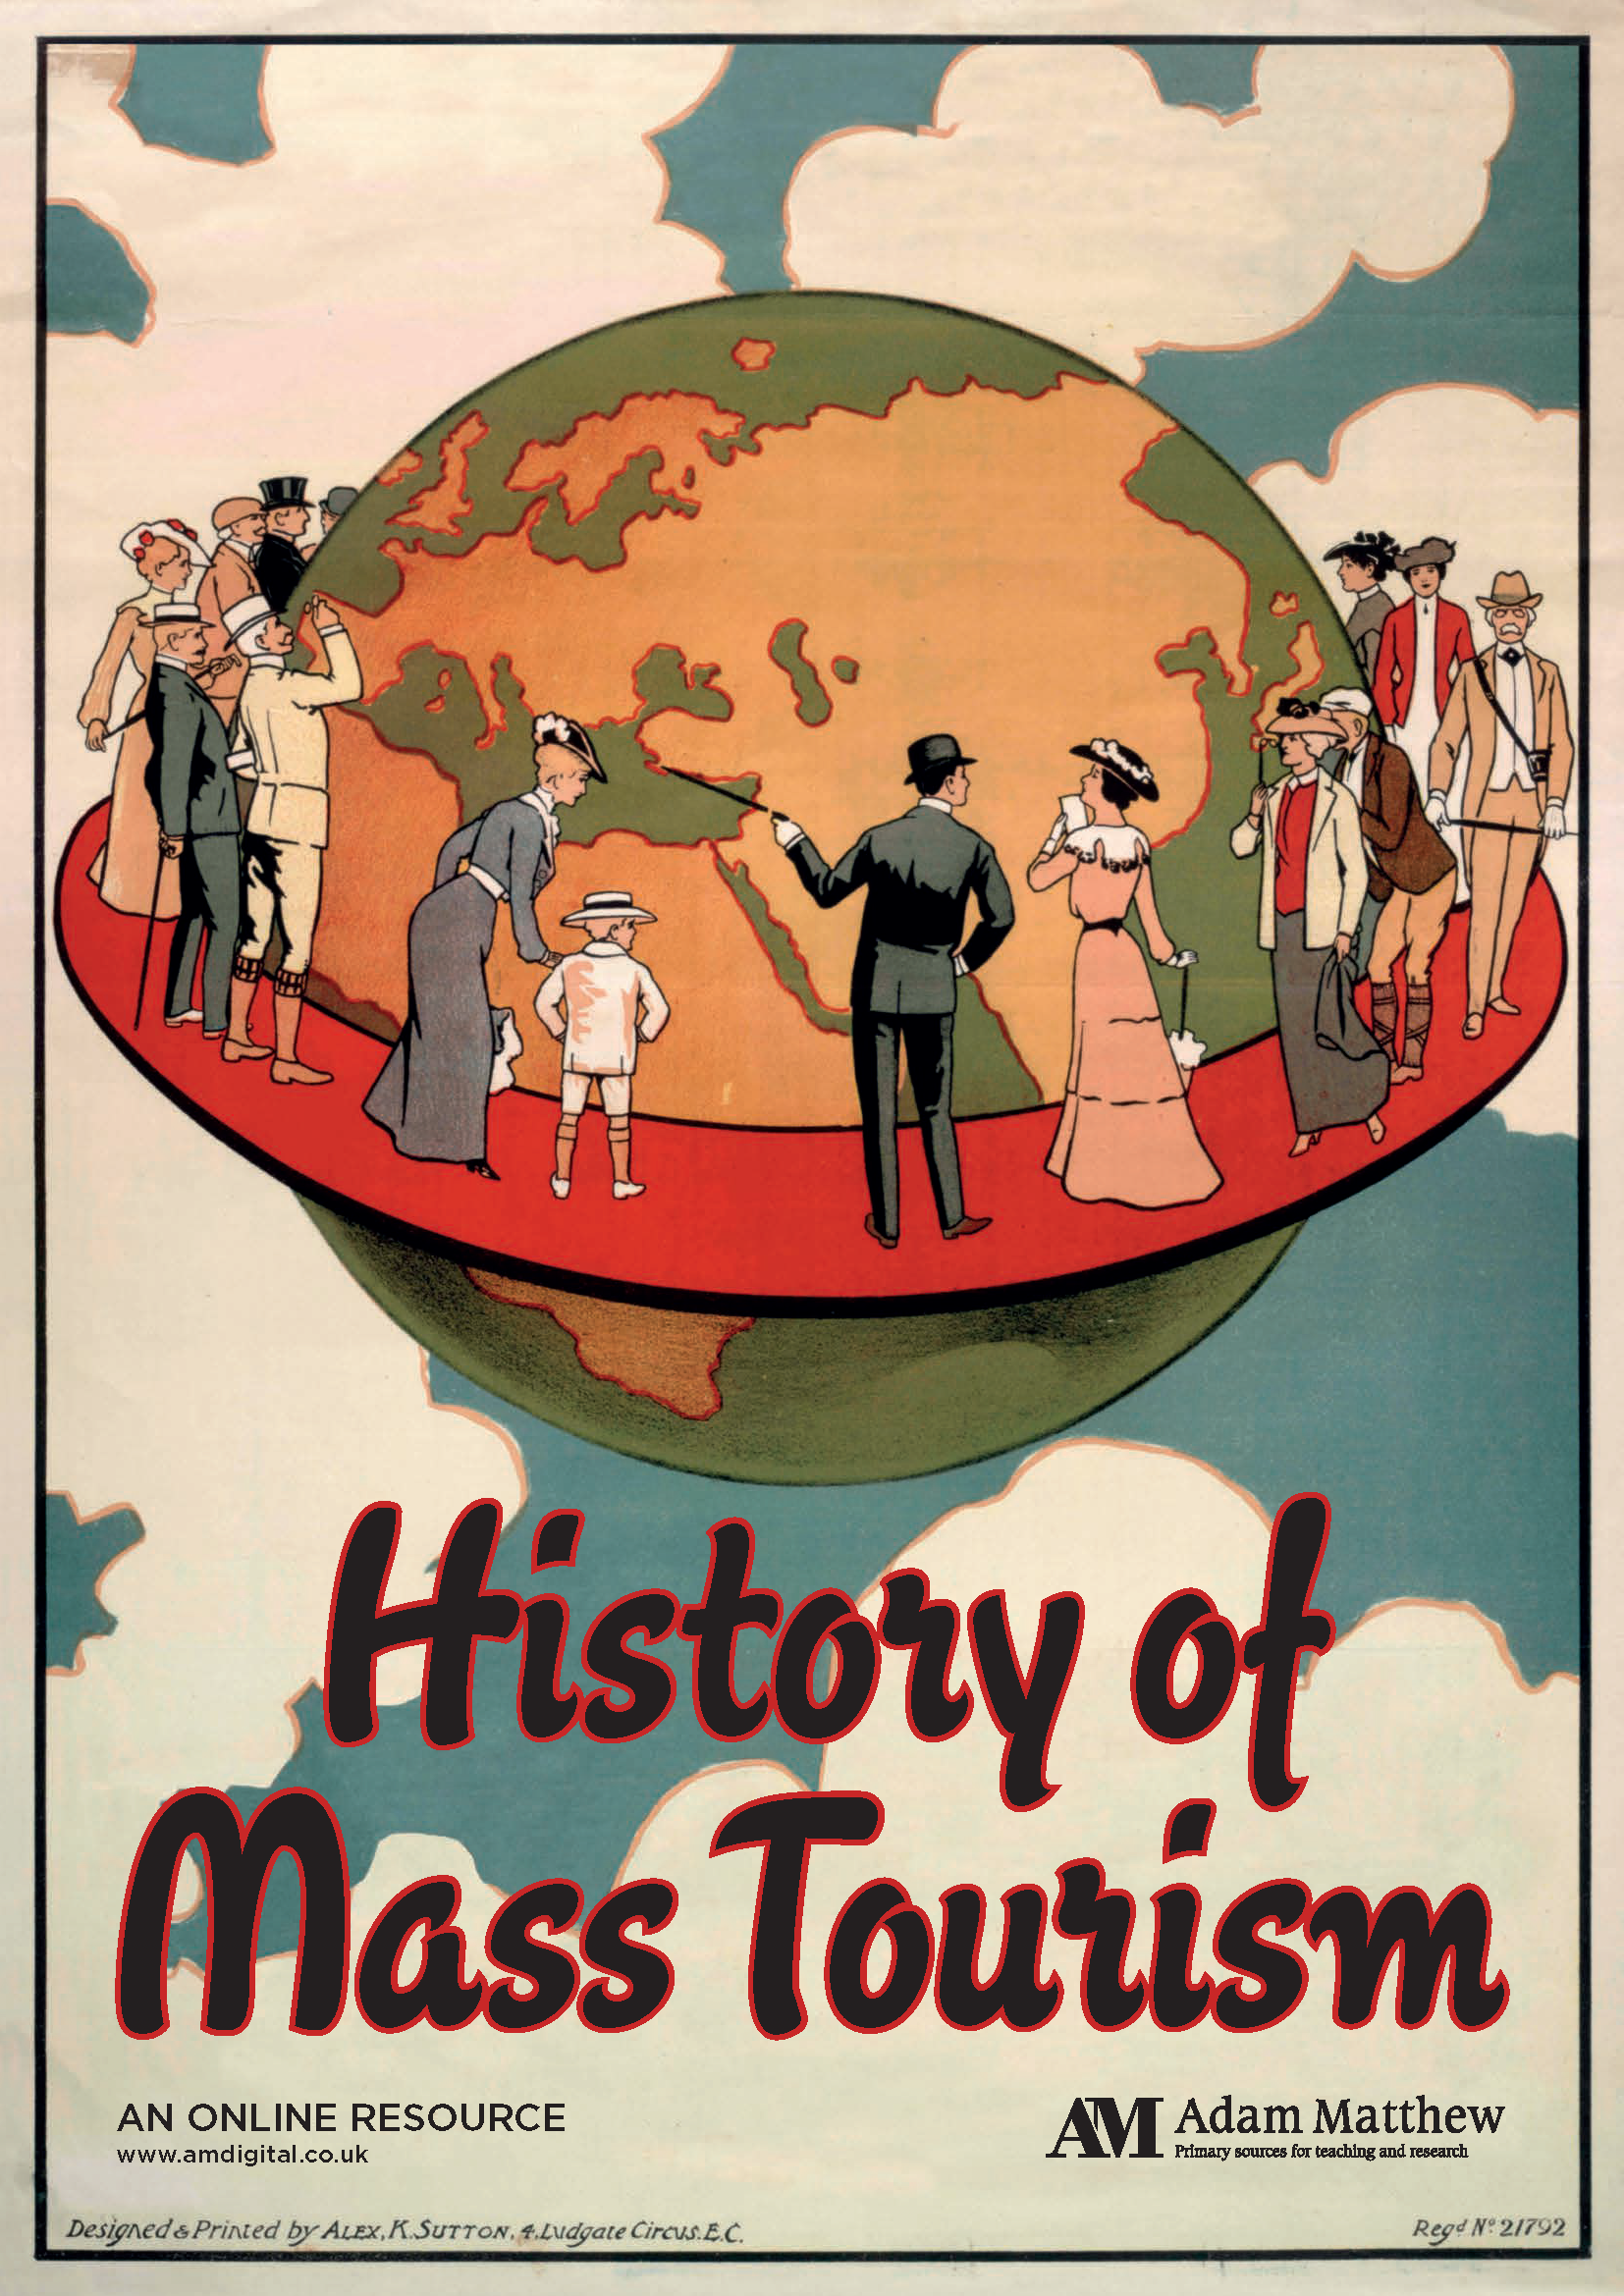 Colorful poster from the 1920s of a globe floating in the clouds with richly dressed people standing on a ring around it.